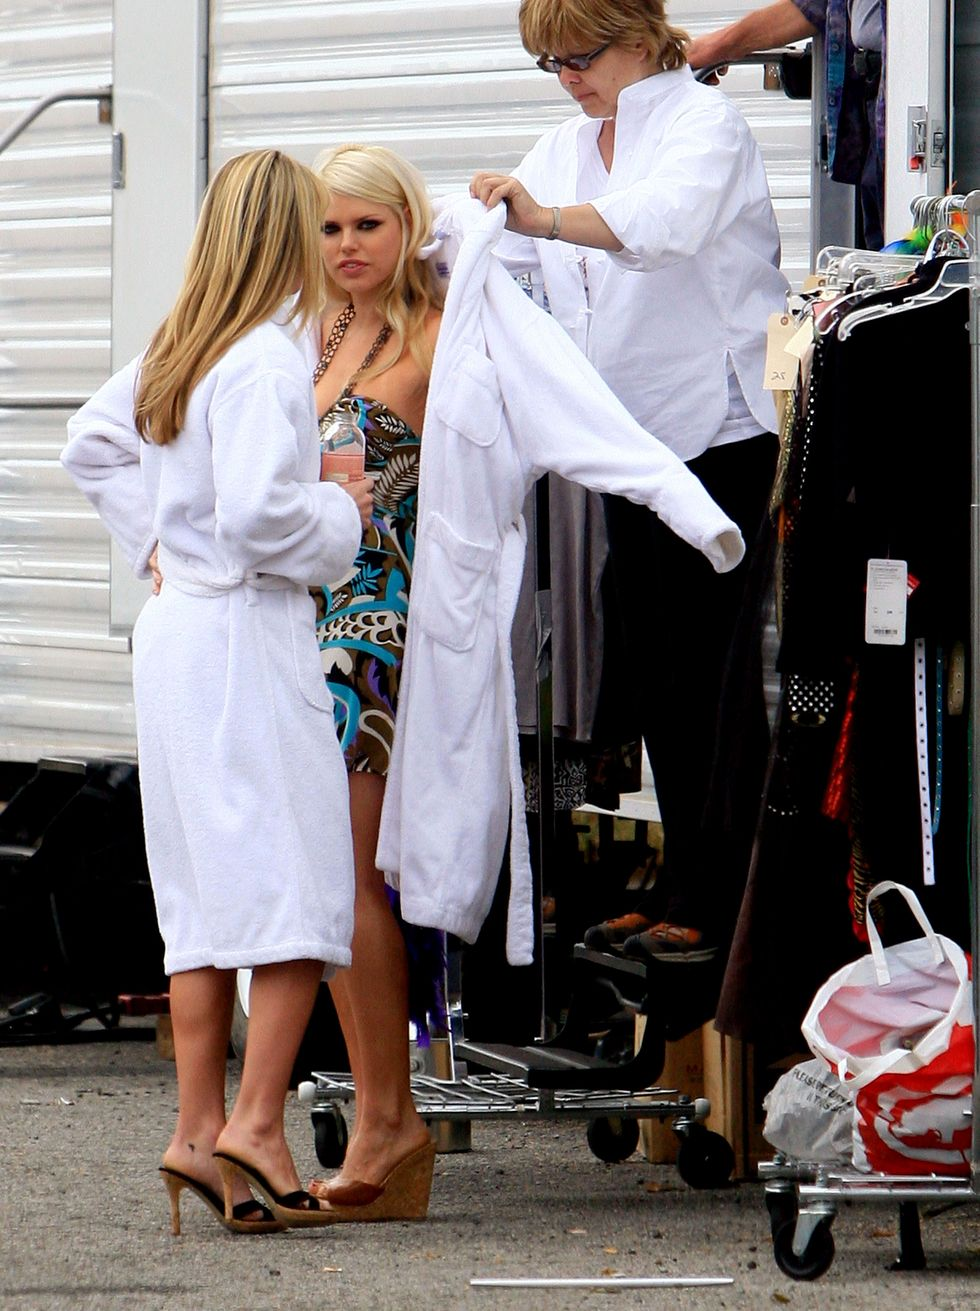 sophie-monk-at-hard-breakers-movie-set-01